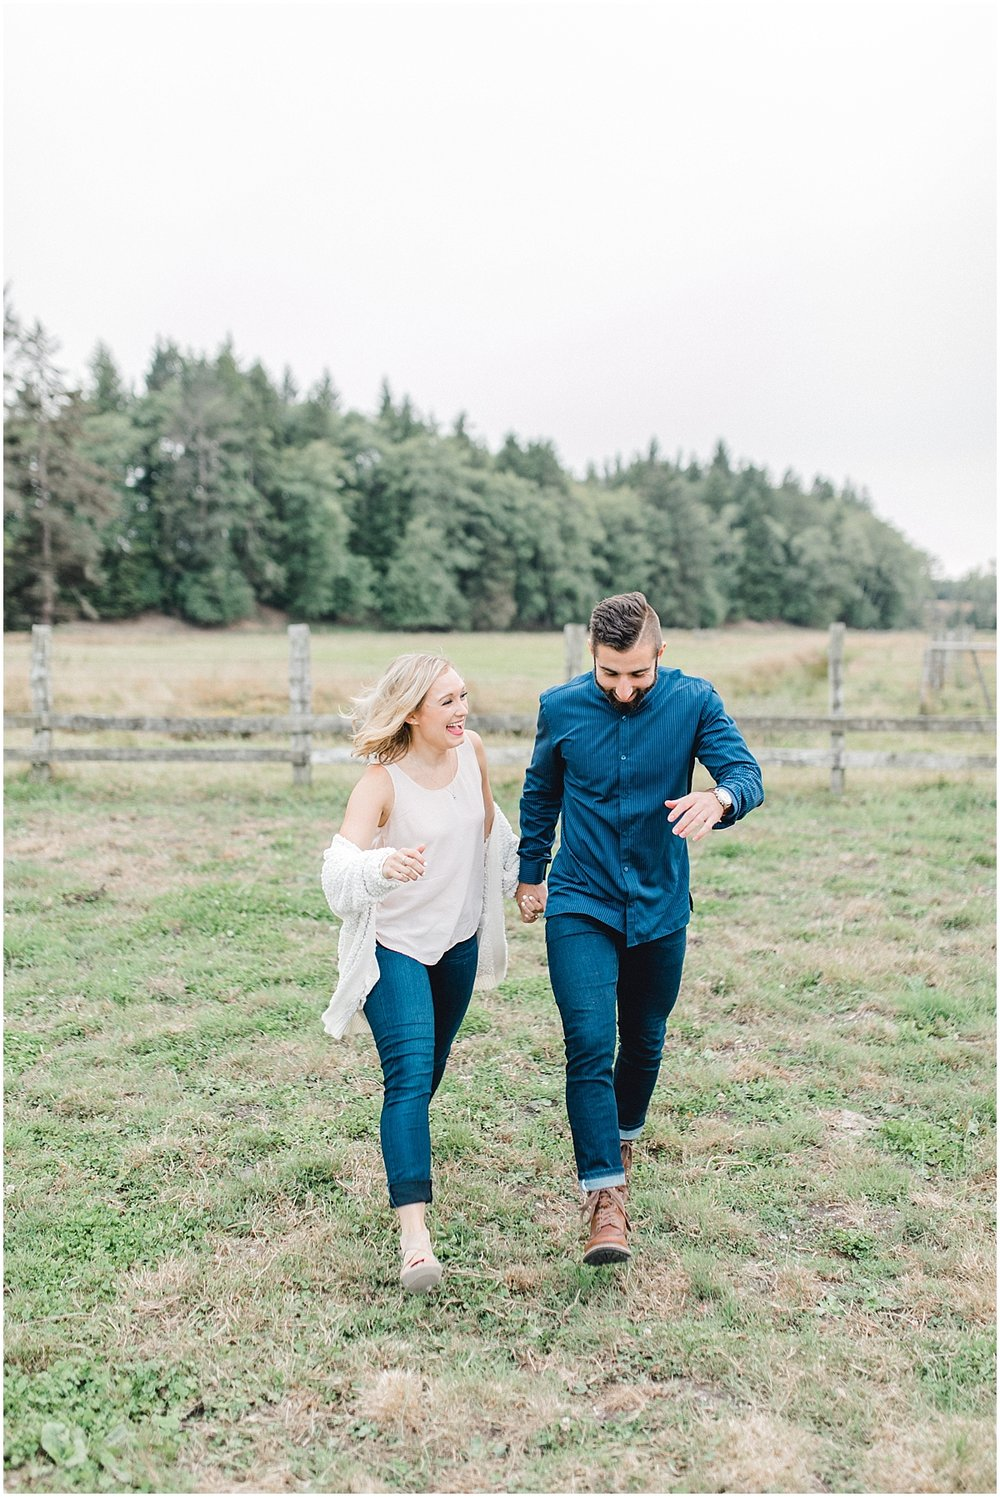 Emma Rose Company | PNW Engagement Session | What to Wear for Pictures | Rose Ranch Engagement | Sunset | Kindred Presets | Seattle Wedding Photographer Light and Airy_0283.jpg